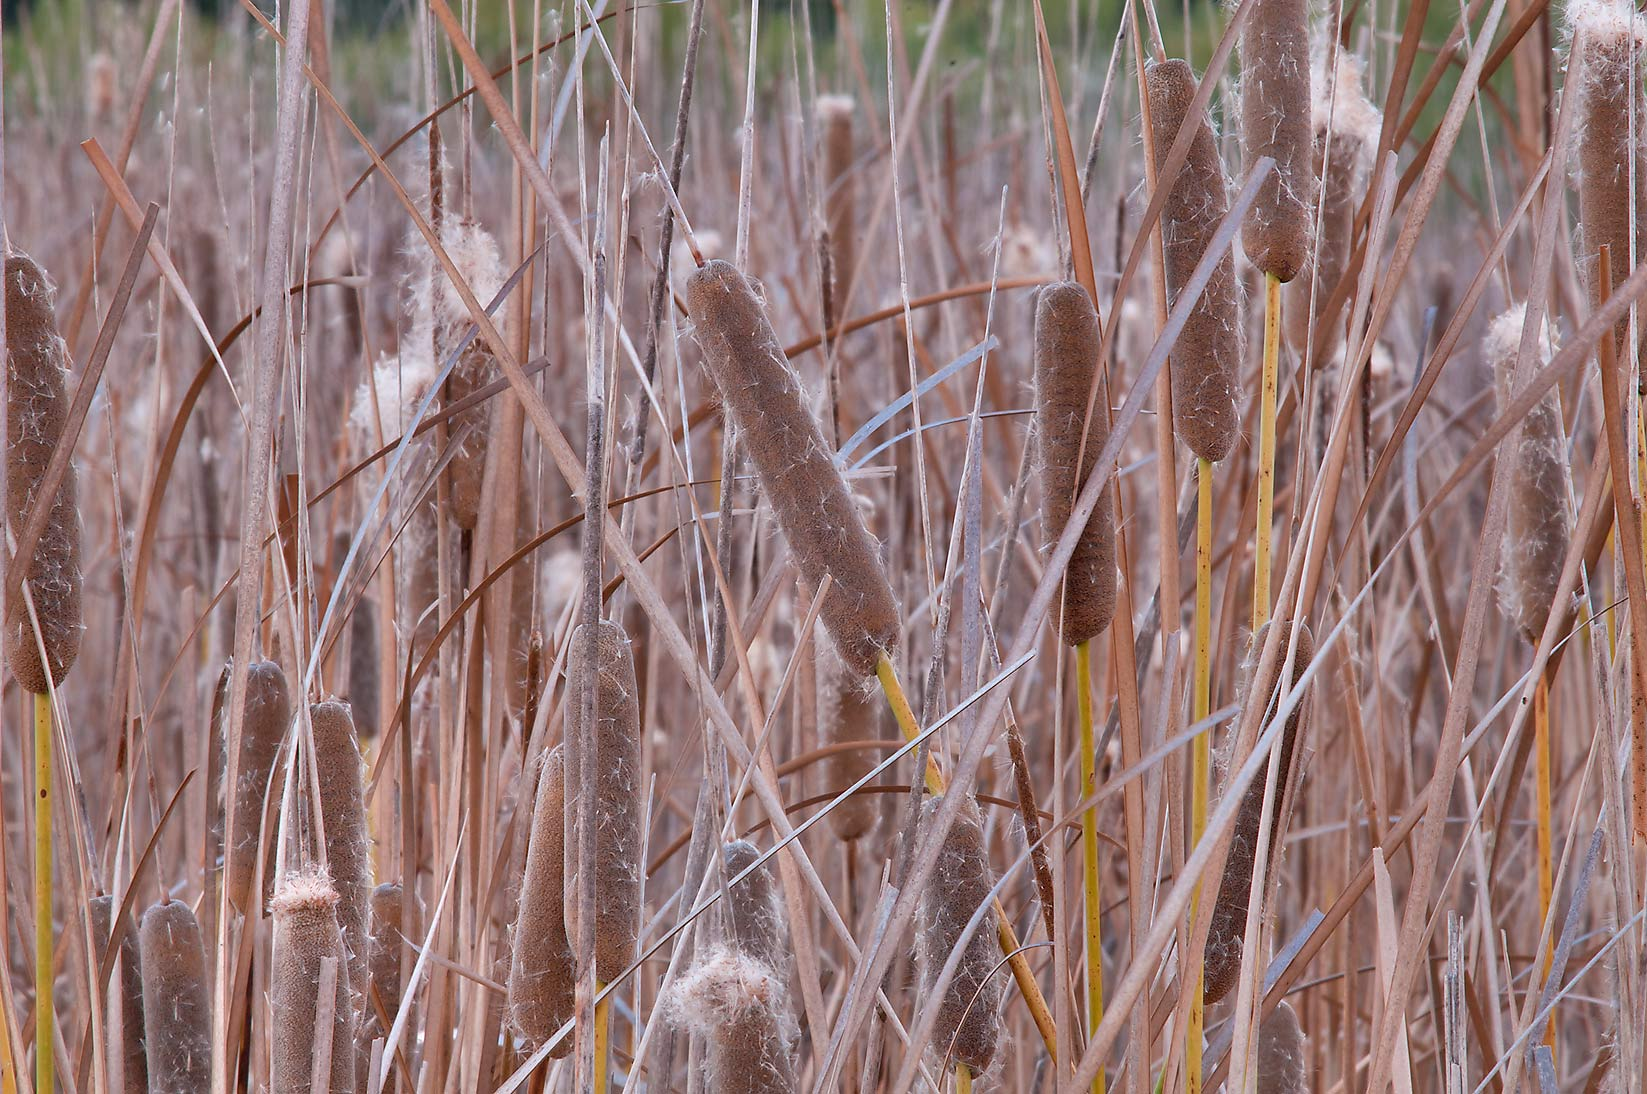 Cattails (typha) in Lake Bryan Park. Bryan, Texas